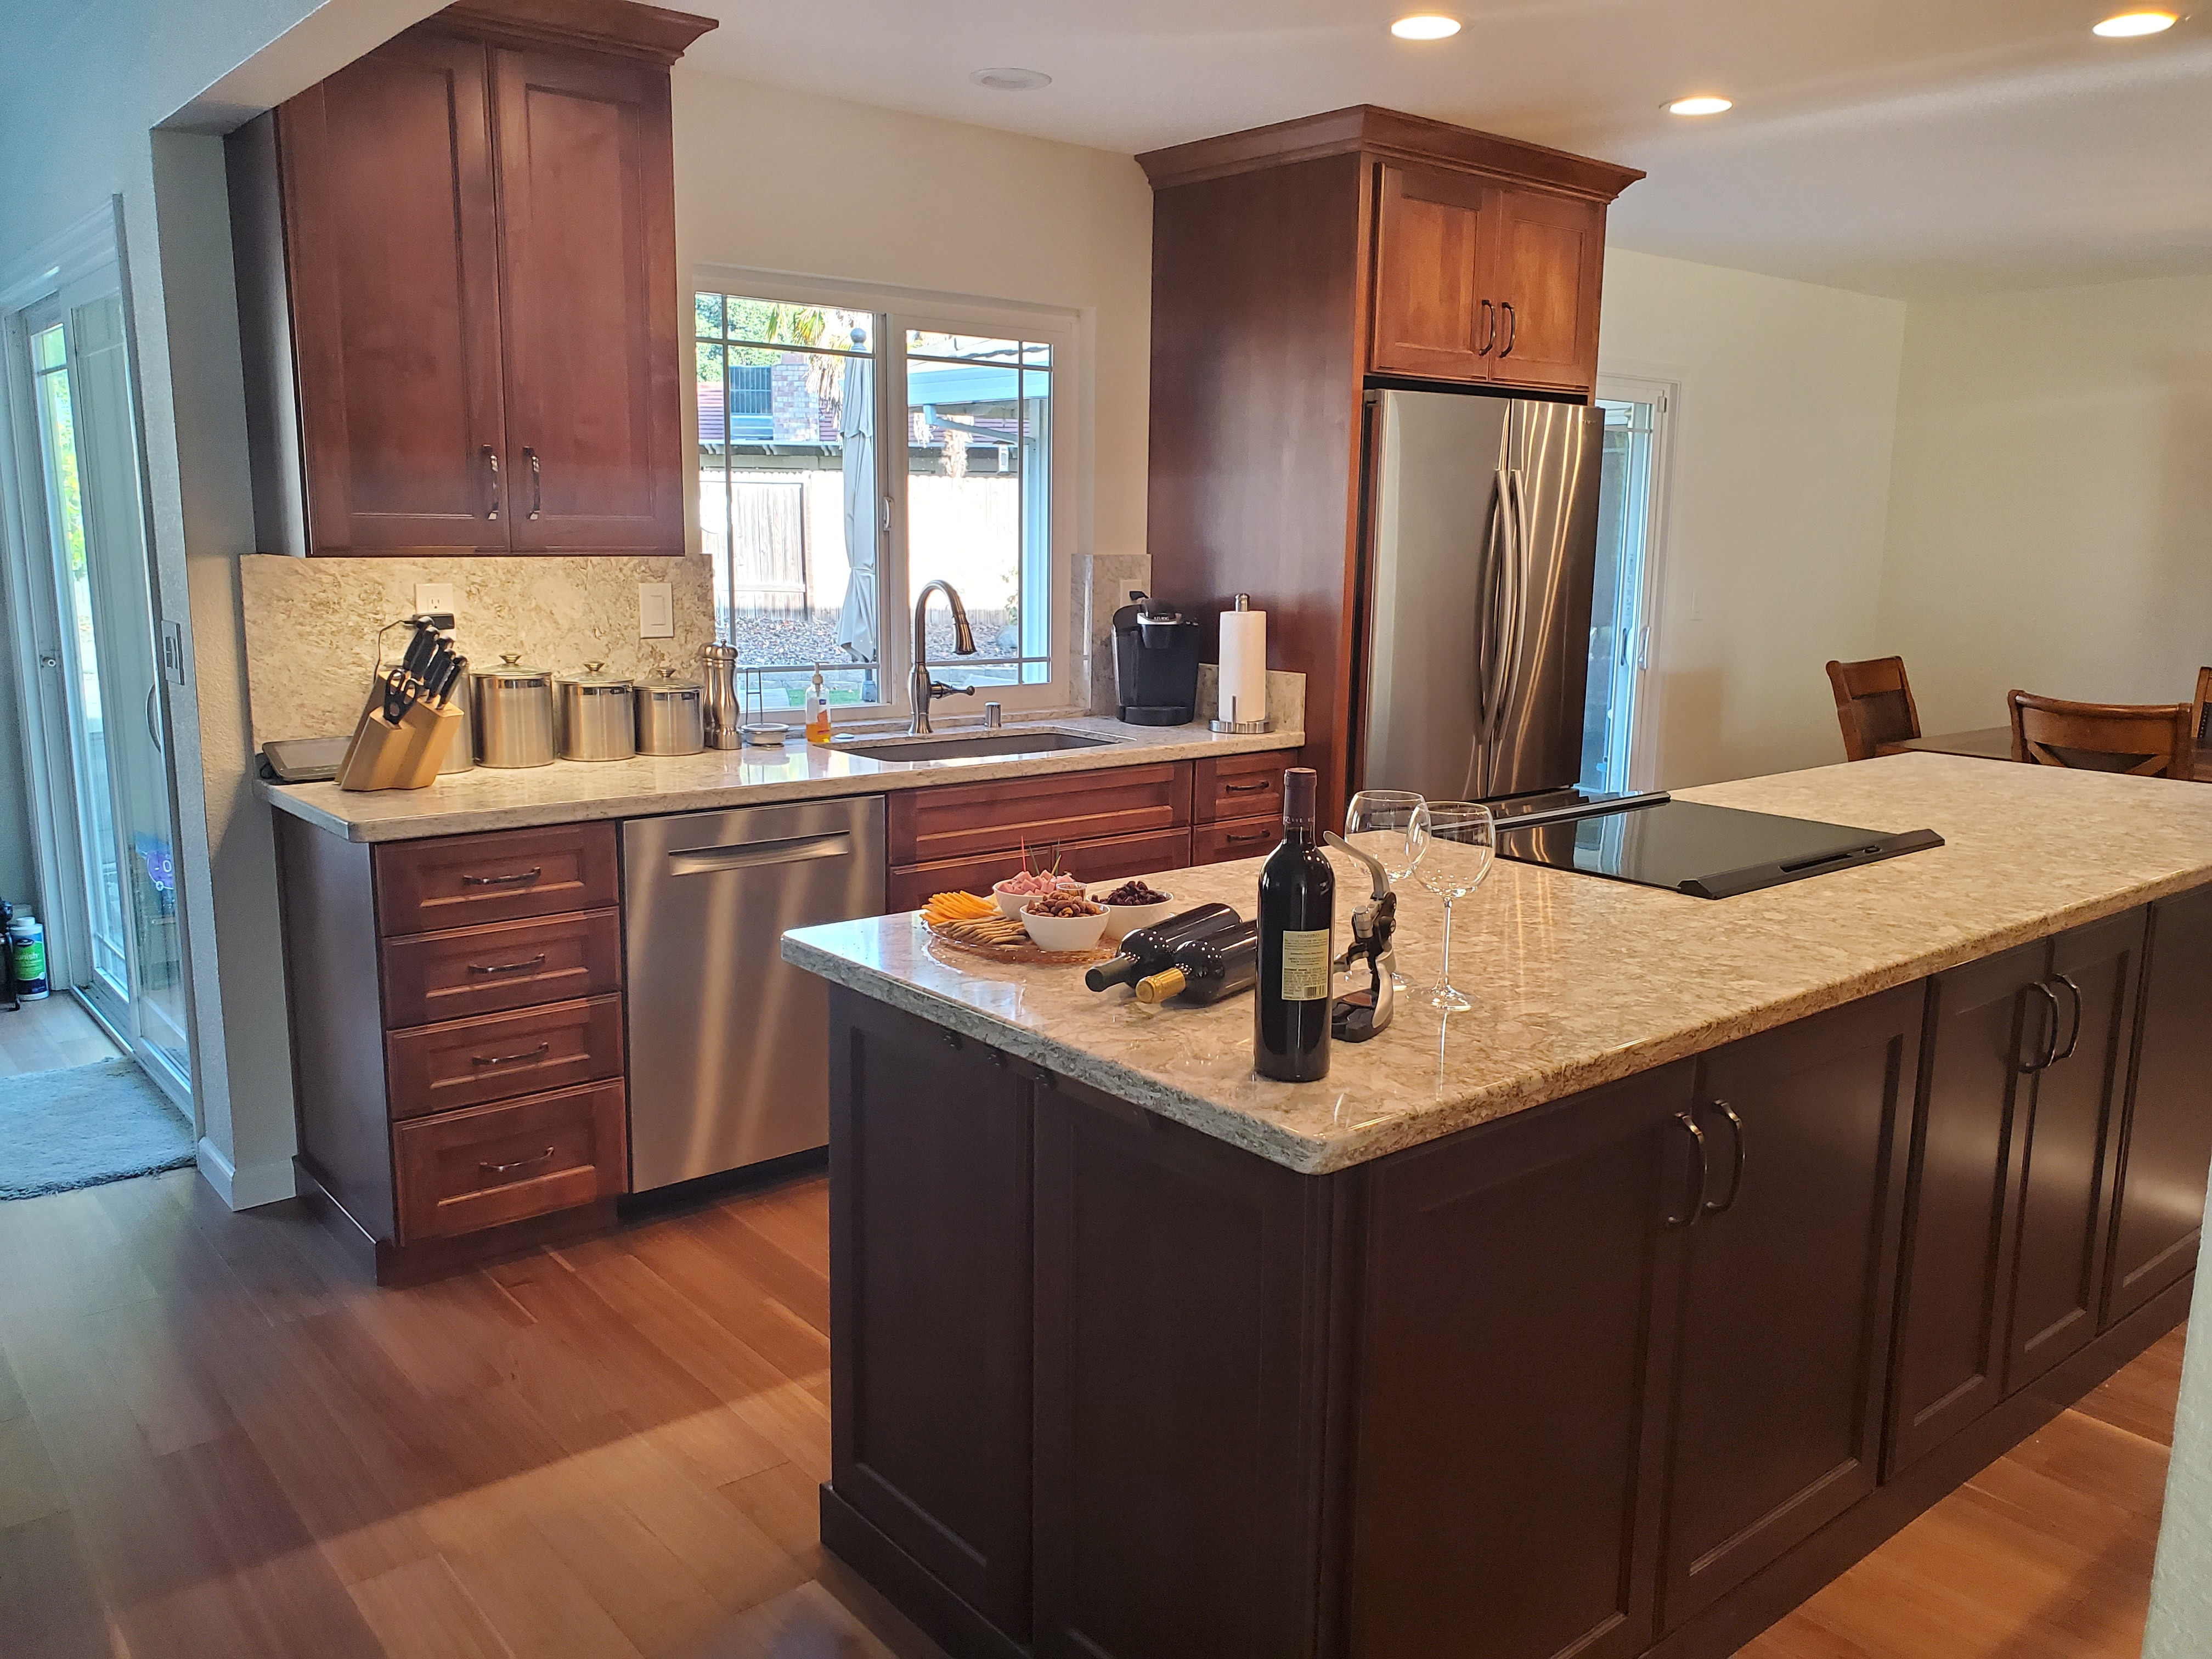 Traditional kitchen with island, stainless appliances, white counters and dark wood cabinets